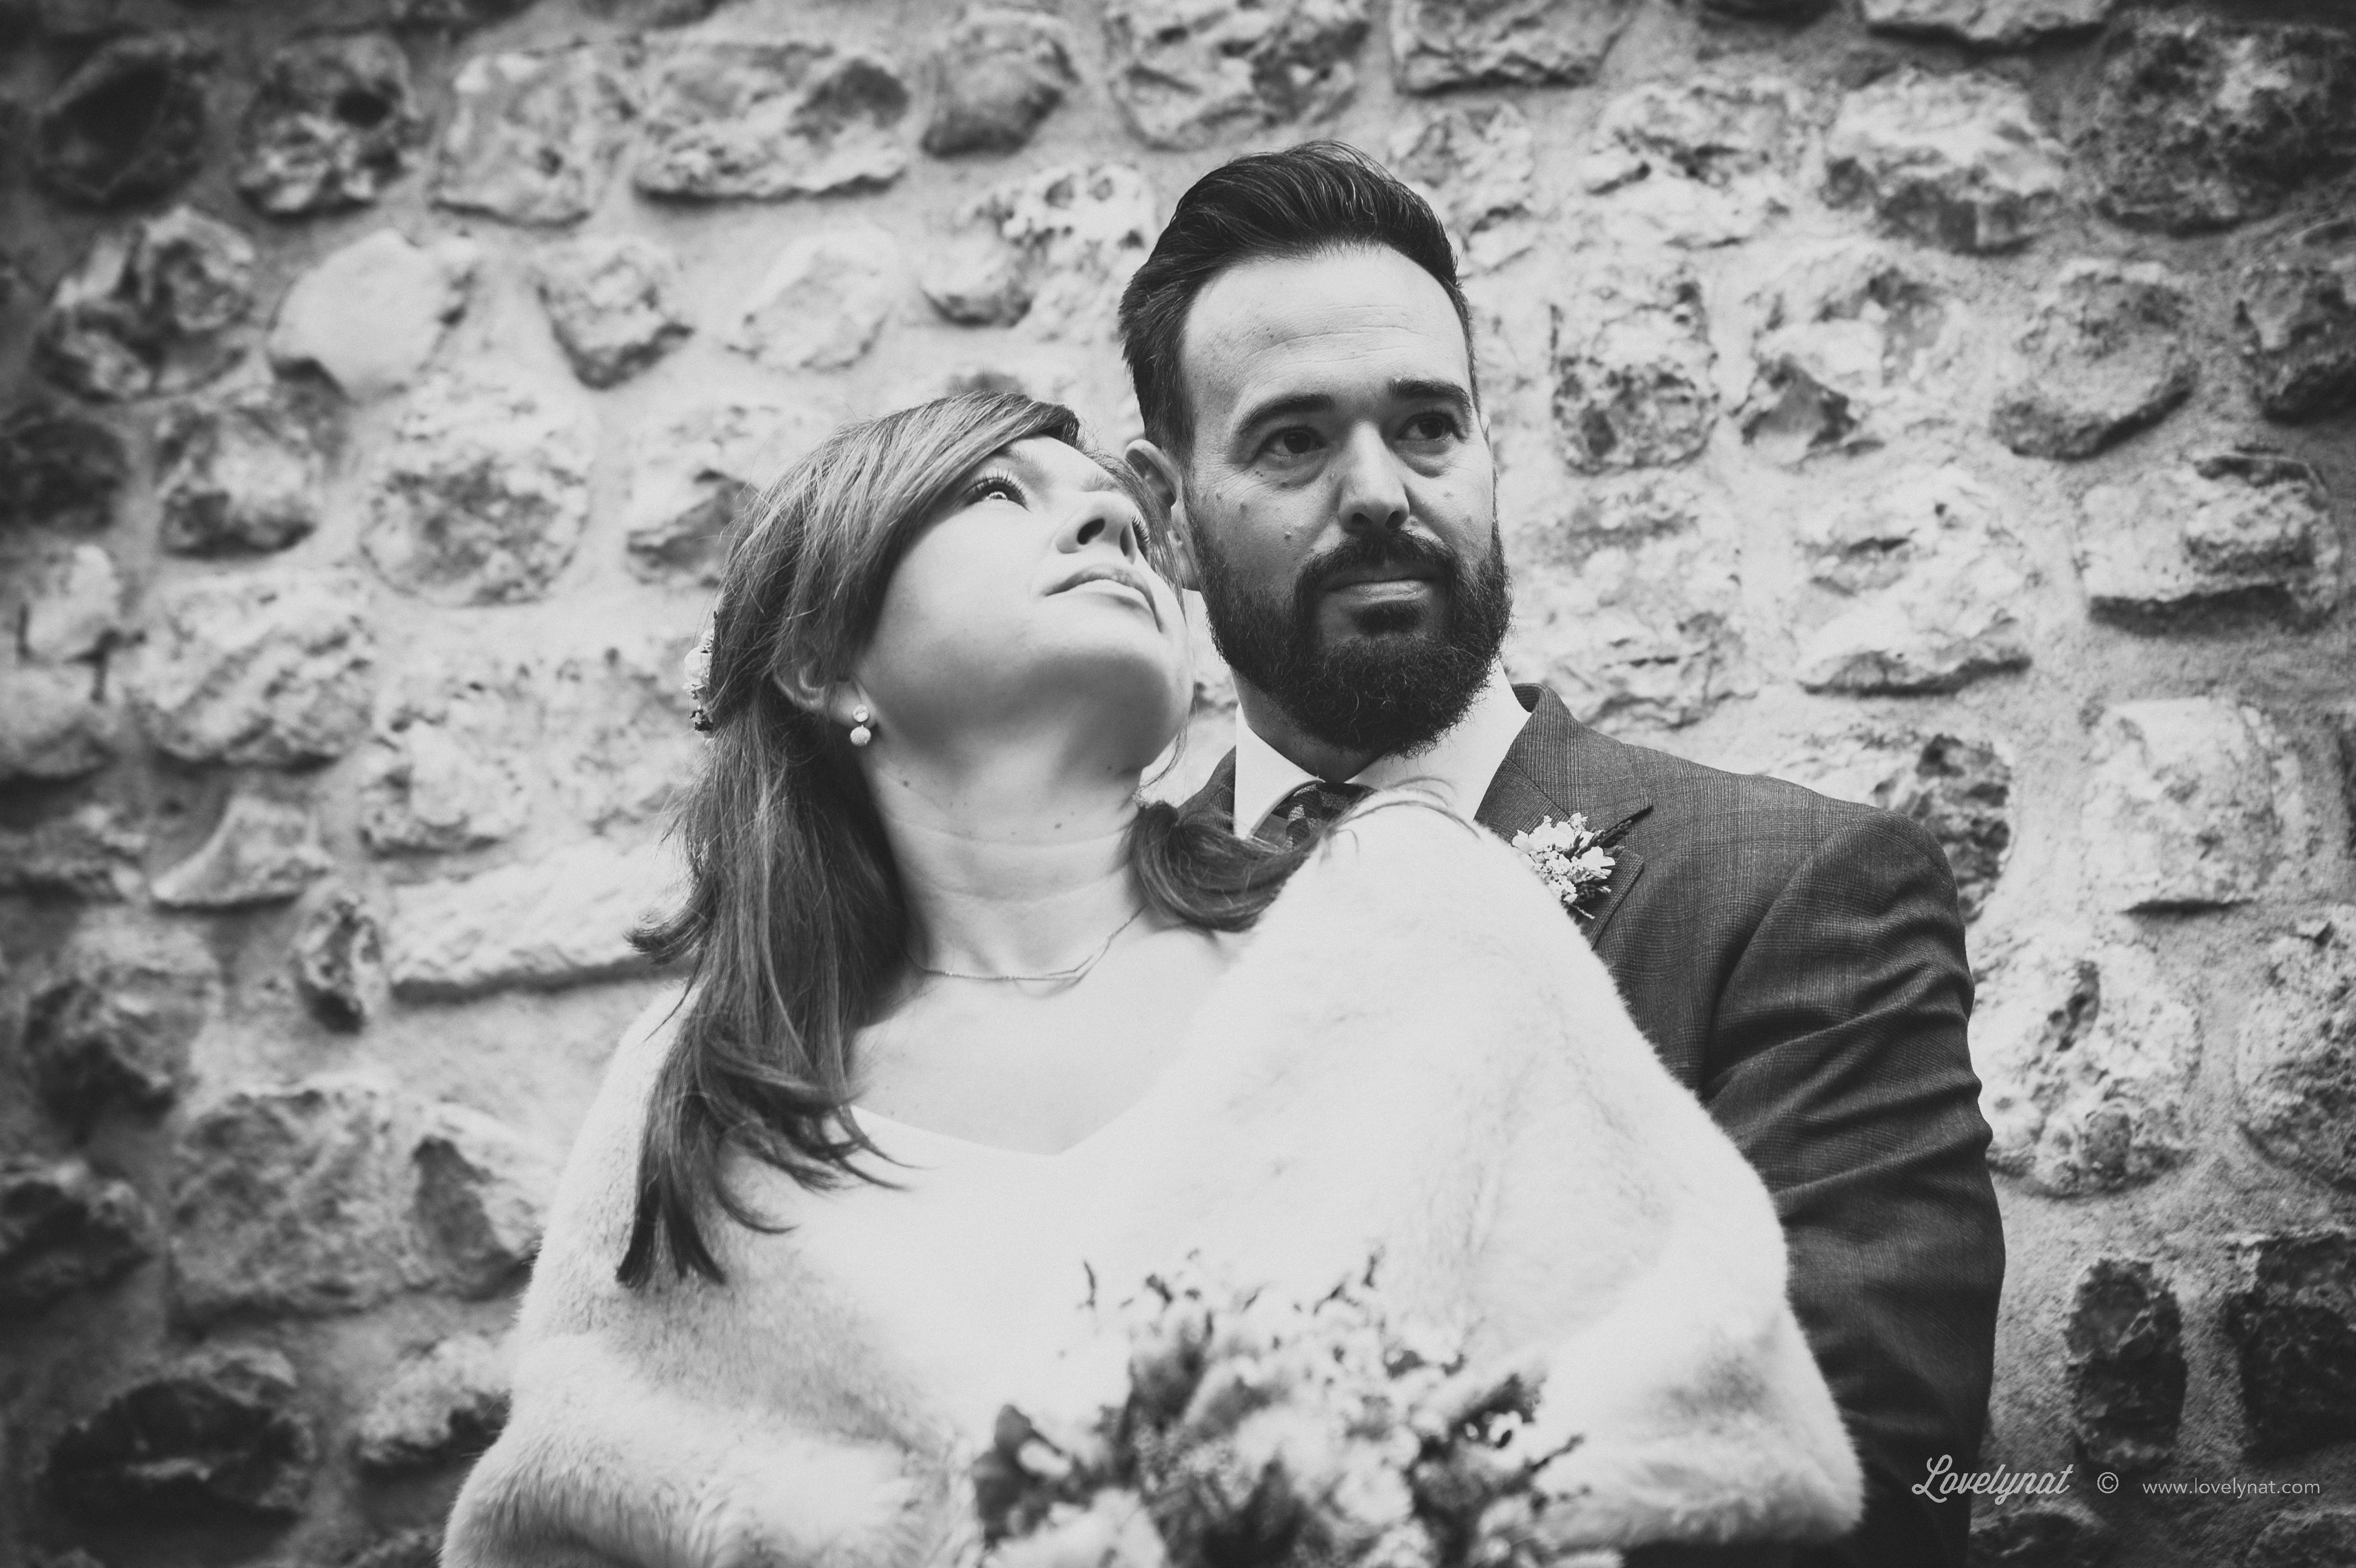 Antonio&Ester_Lovelynat-Photography_139_BW_result